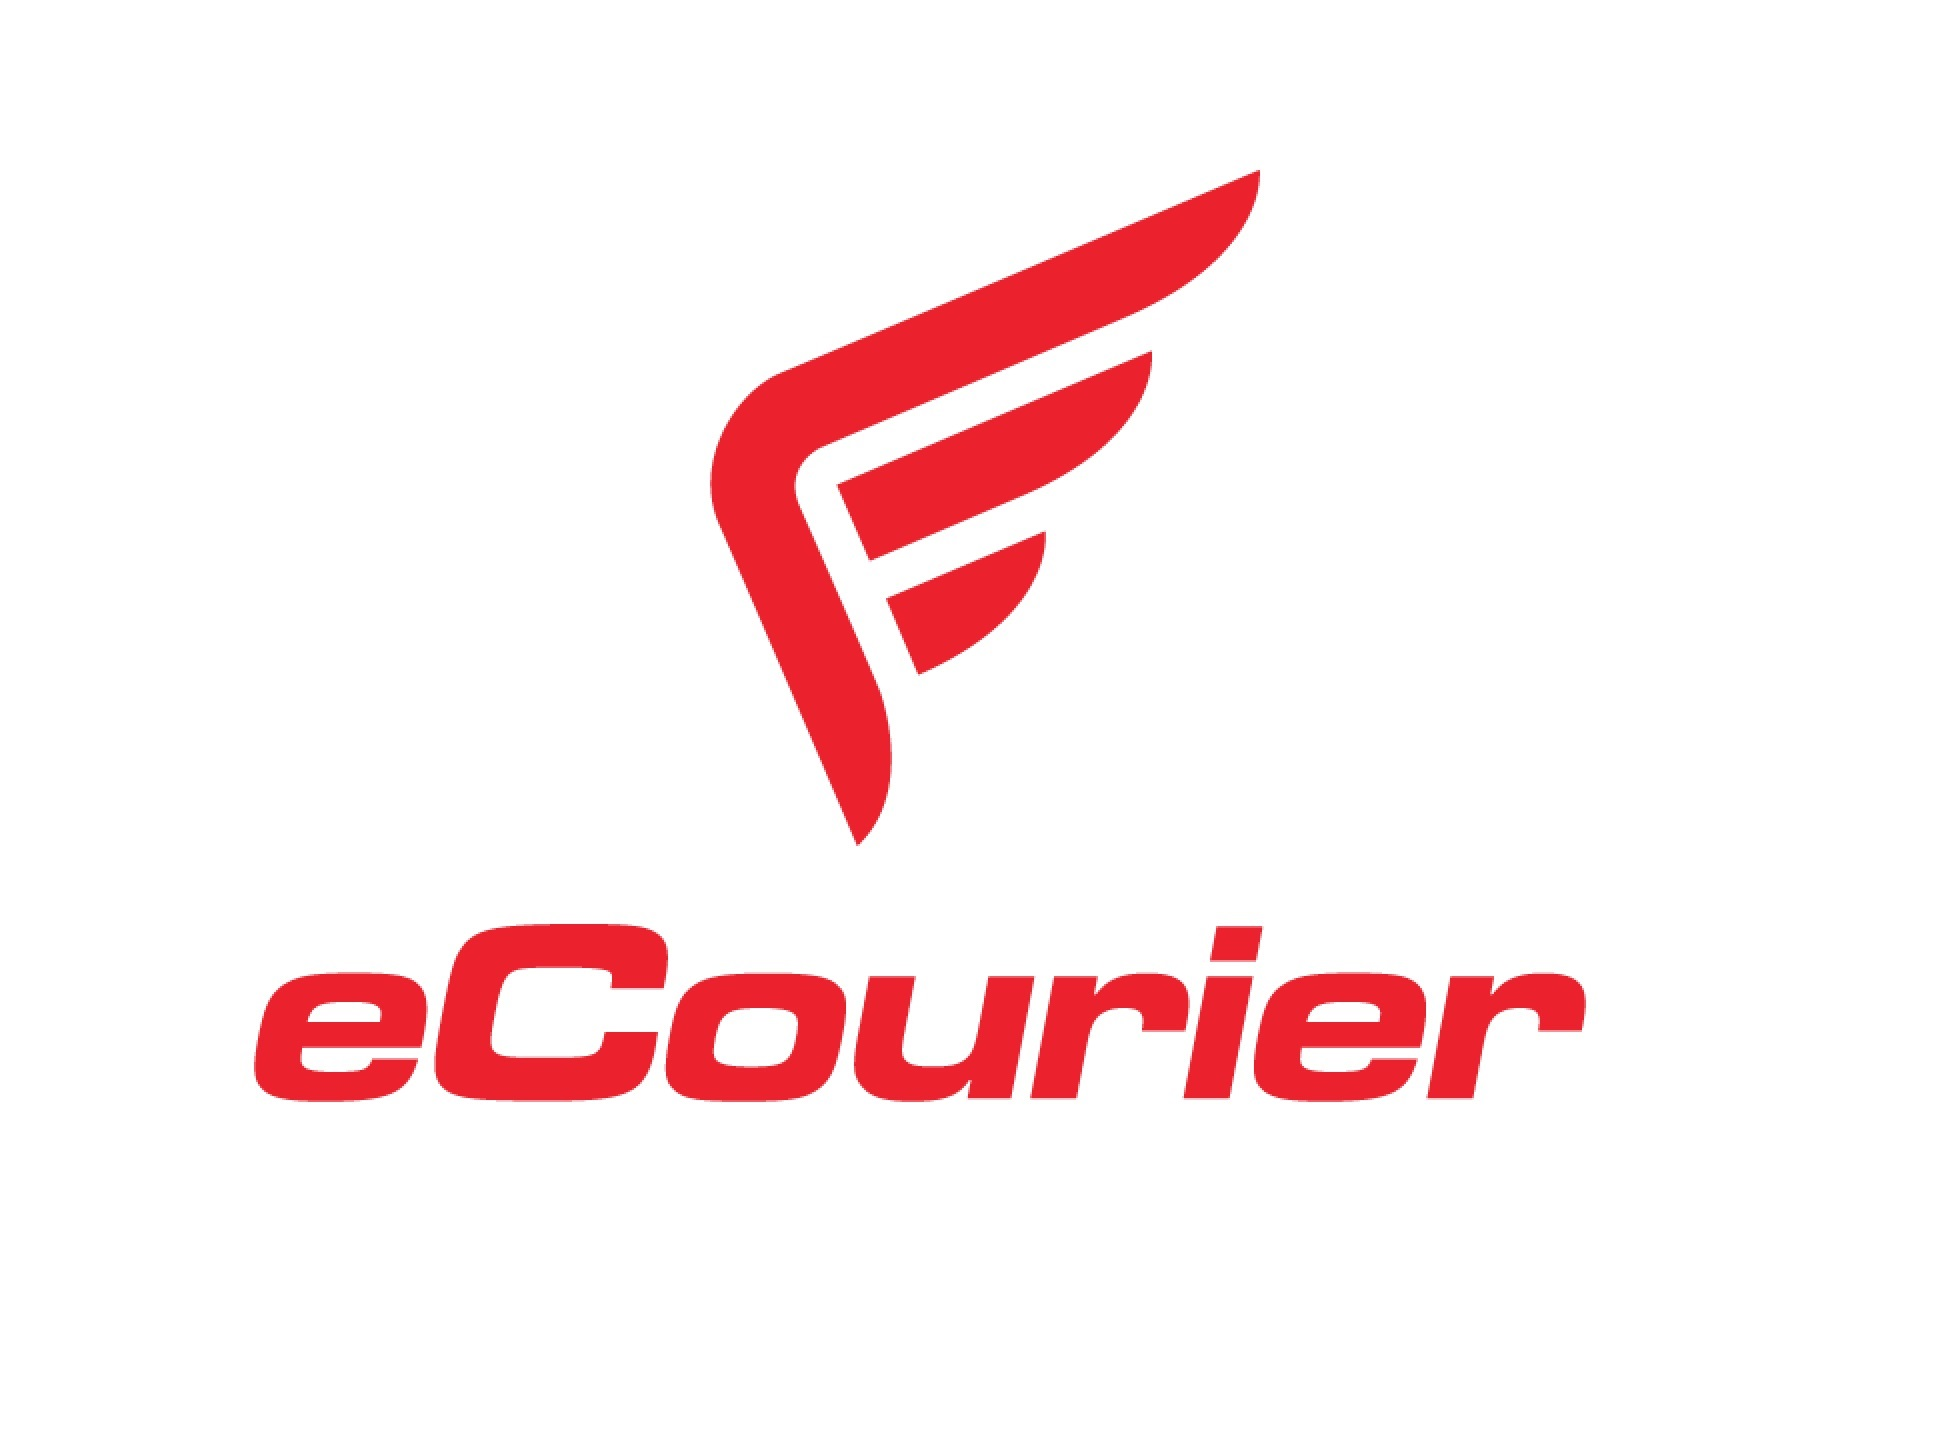 eCourier-logo-toate-site-urile